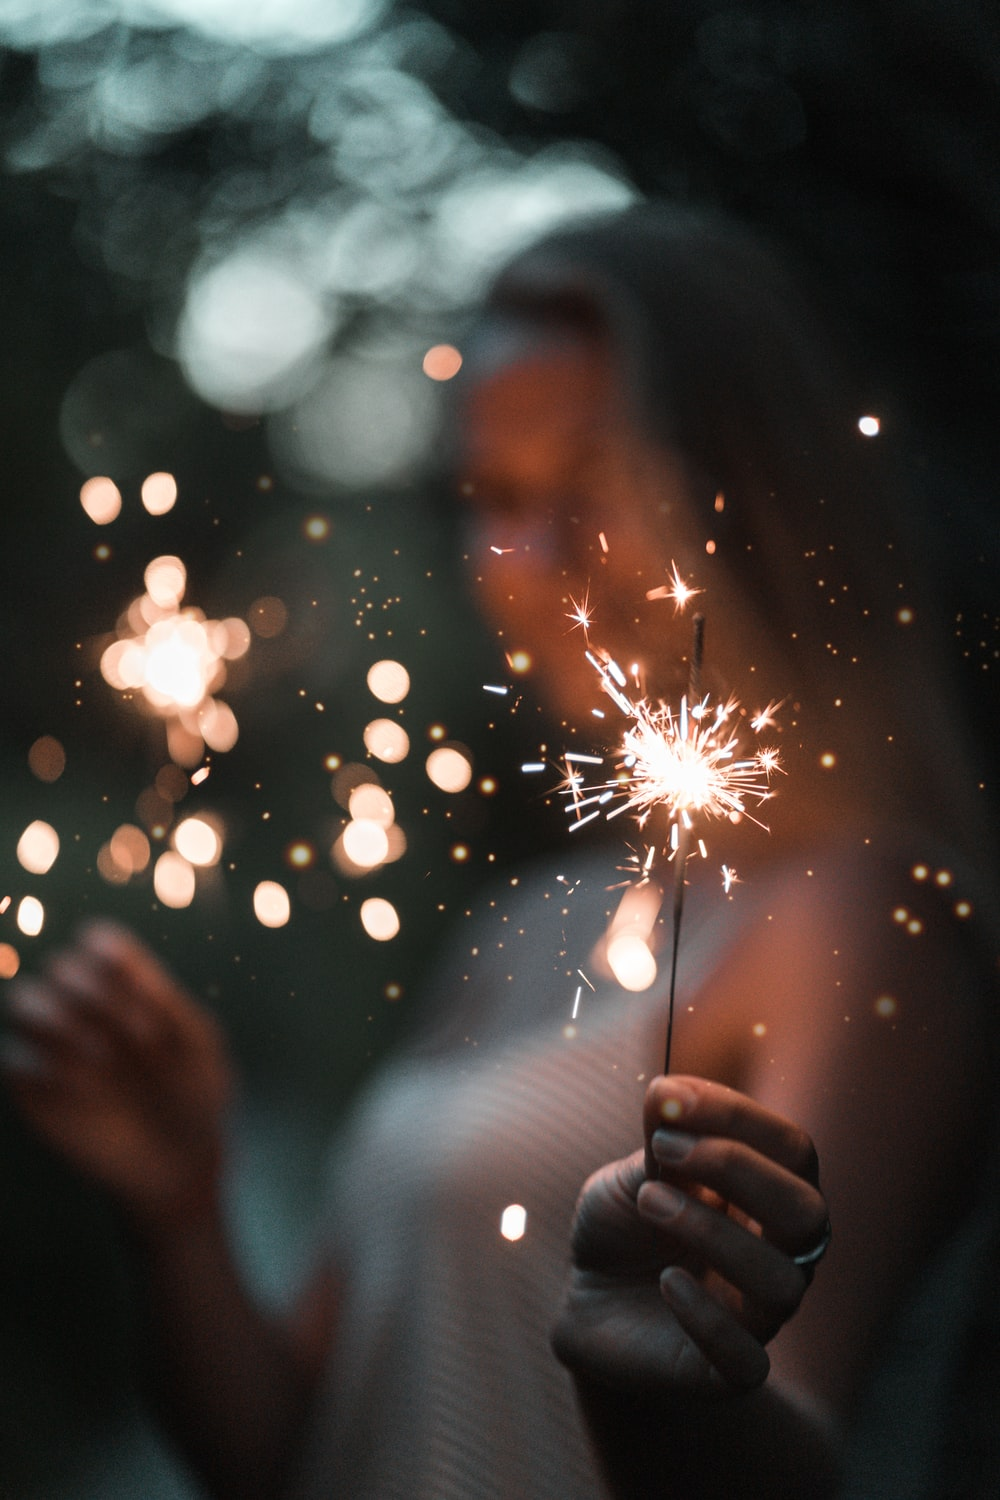 woman holding fire cracker in selective focus photography